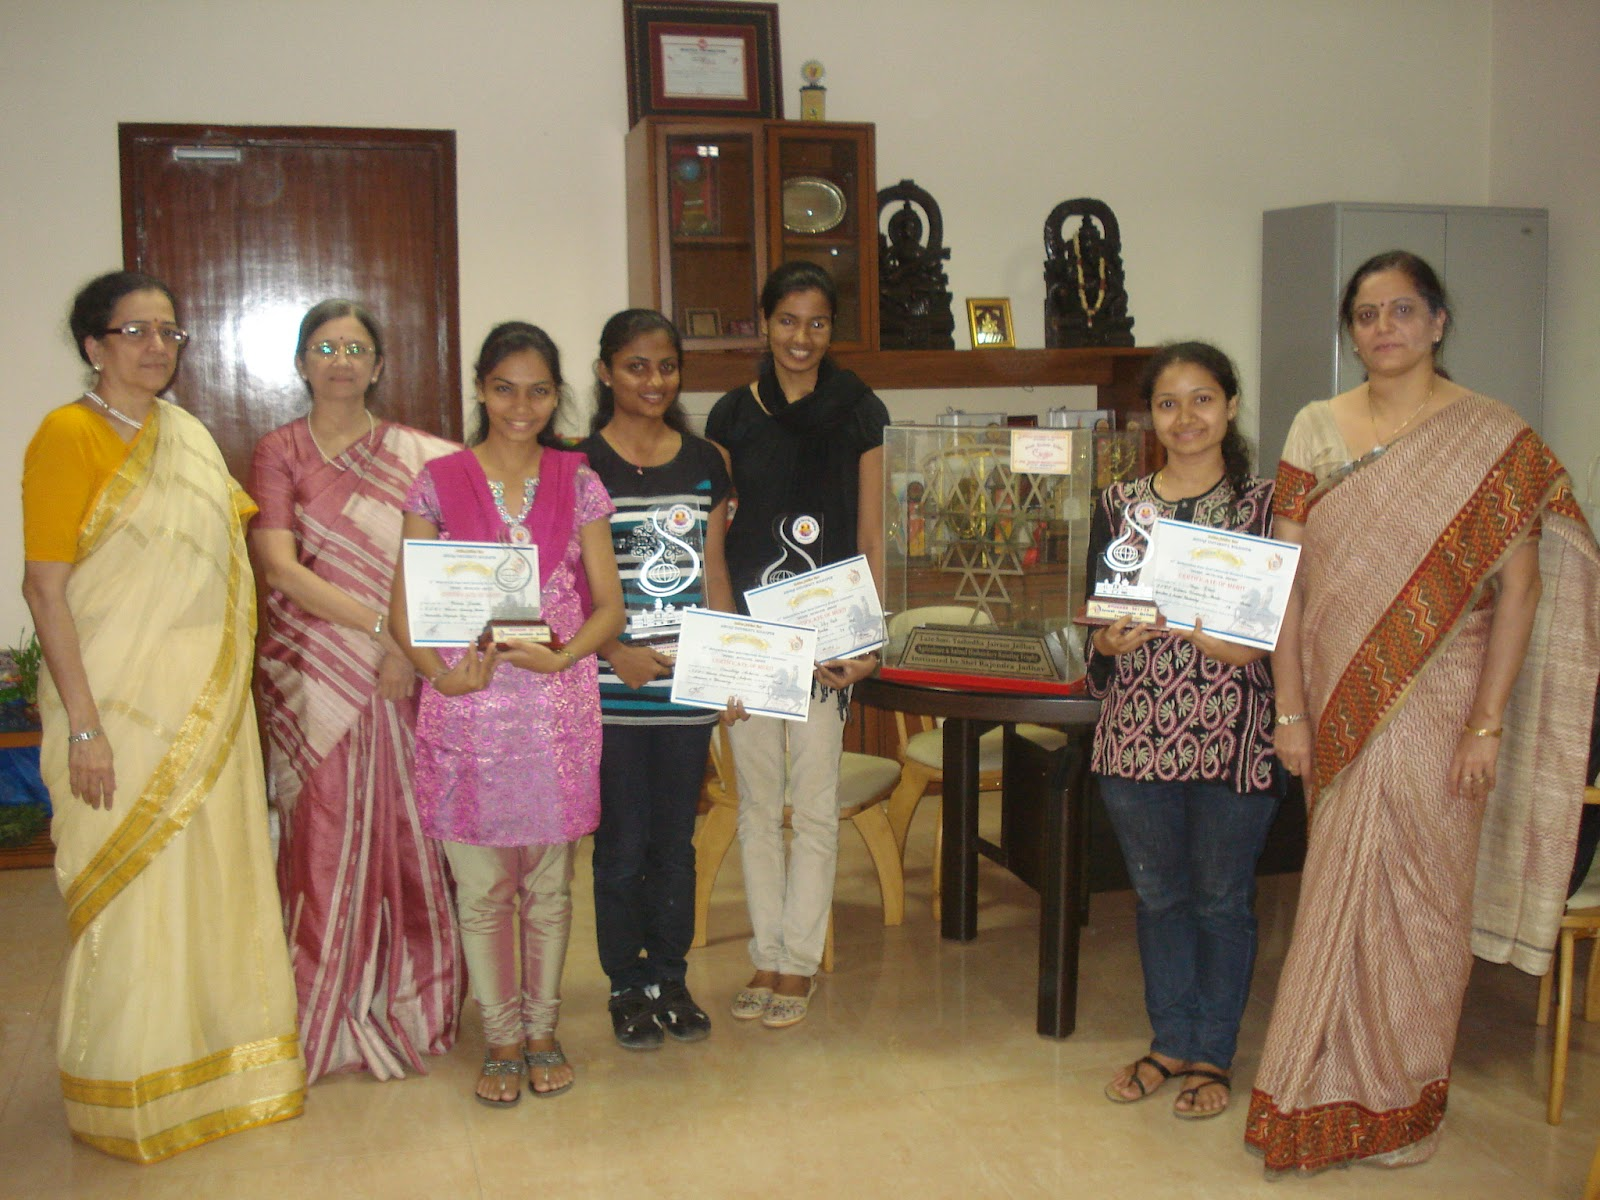 Sndt Women S University Mumbai Reviews Schools Private School Public School Technical School Primary School Secondary School